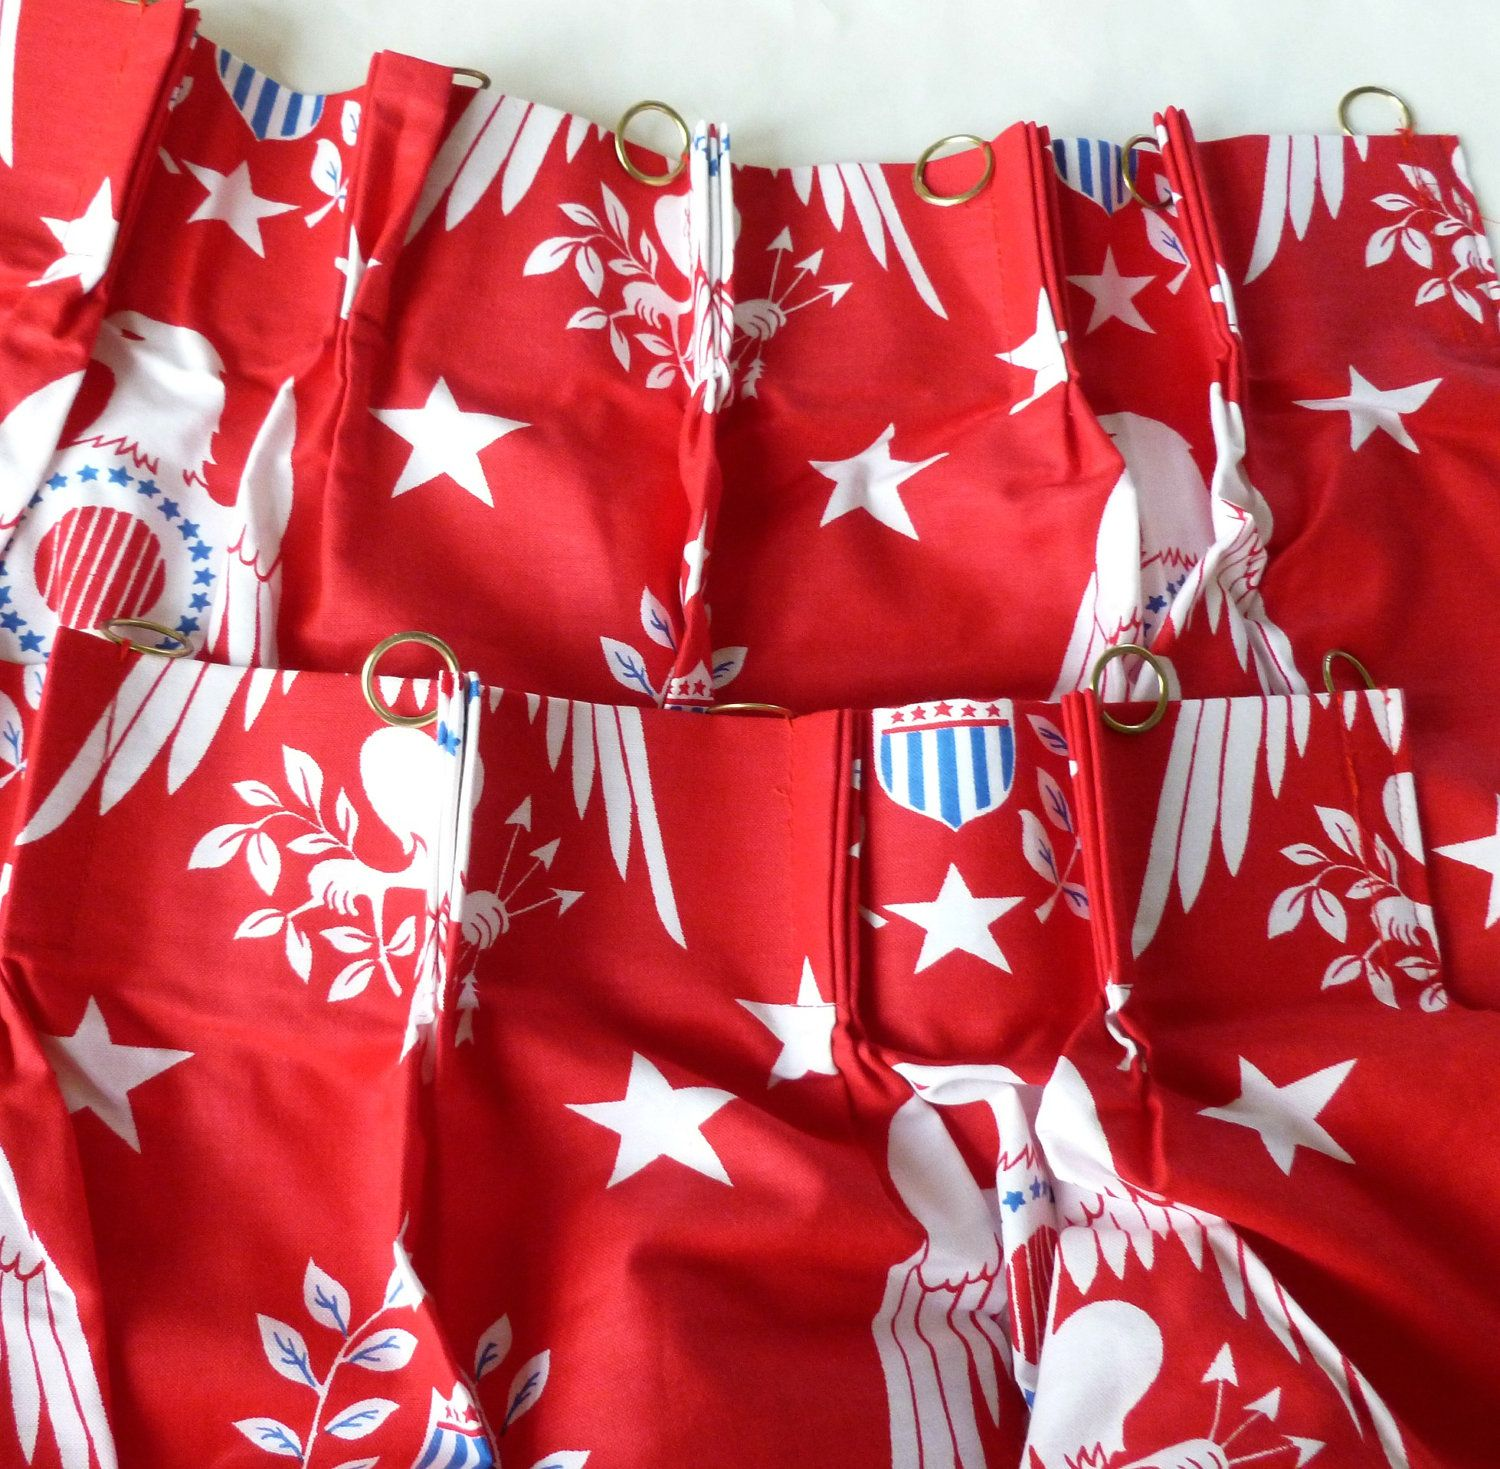 Patriotic Eagles and Stars Cafe Curtain Panels in Red, White and Blue Americana Pinch Pleat with Rings New Old Stock Unused Mid Century. $35.00, via Etsy.